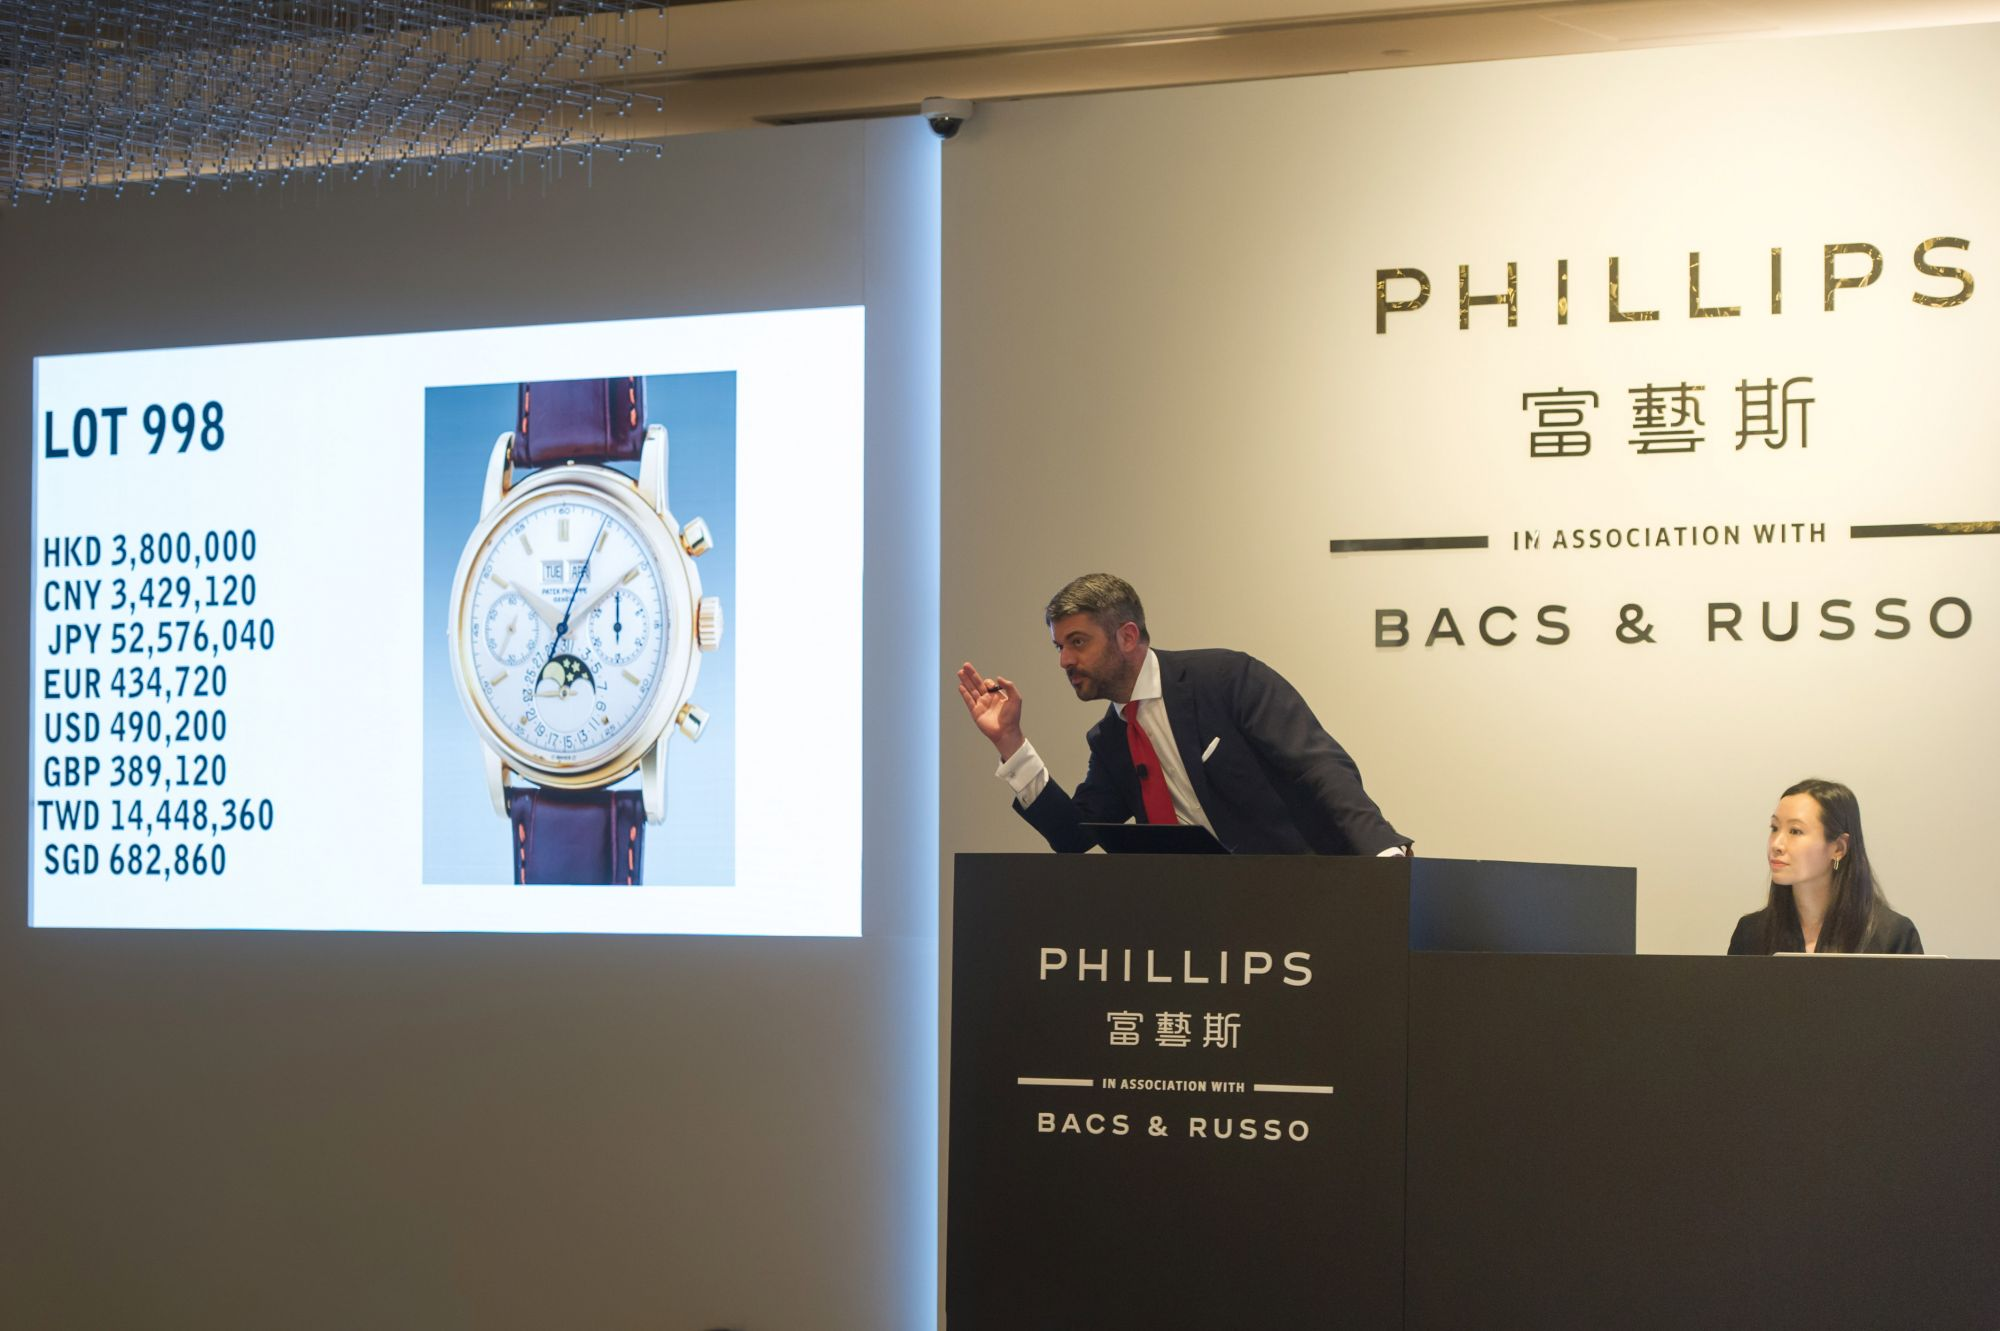 This Patek Philippe Fetched US$607,590 at Auction